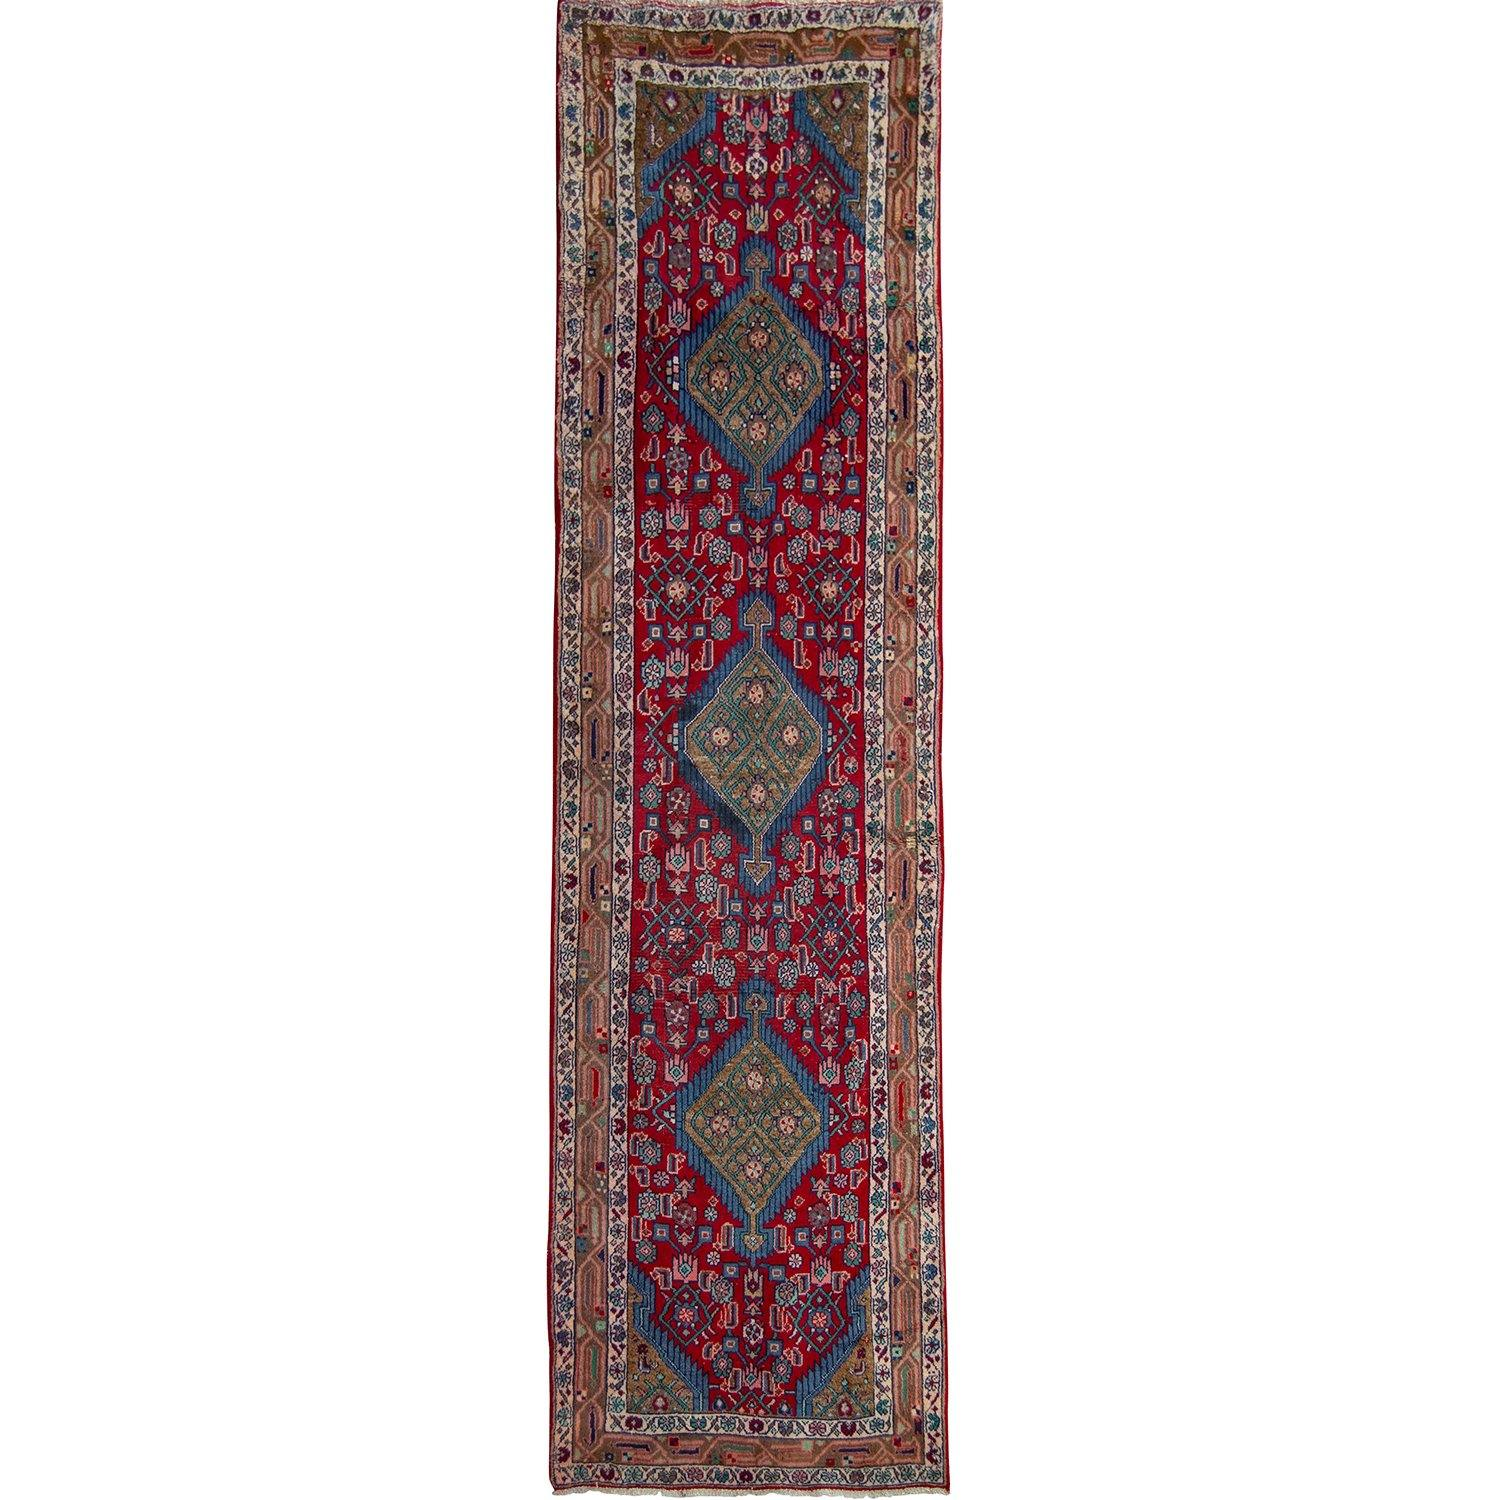 20755 Persian-Rug | House-of-Haghi | NewMarket | Auckland | NZ | Handmade Persian Rugs | Hand Knotted Persian Rugs